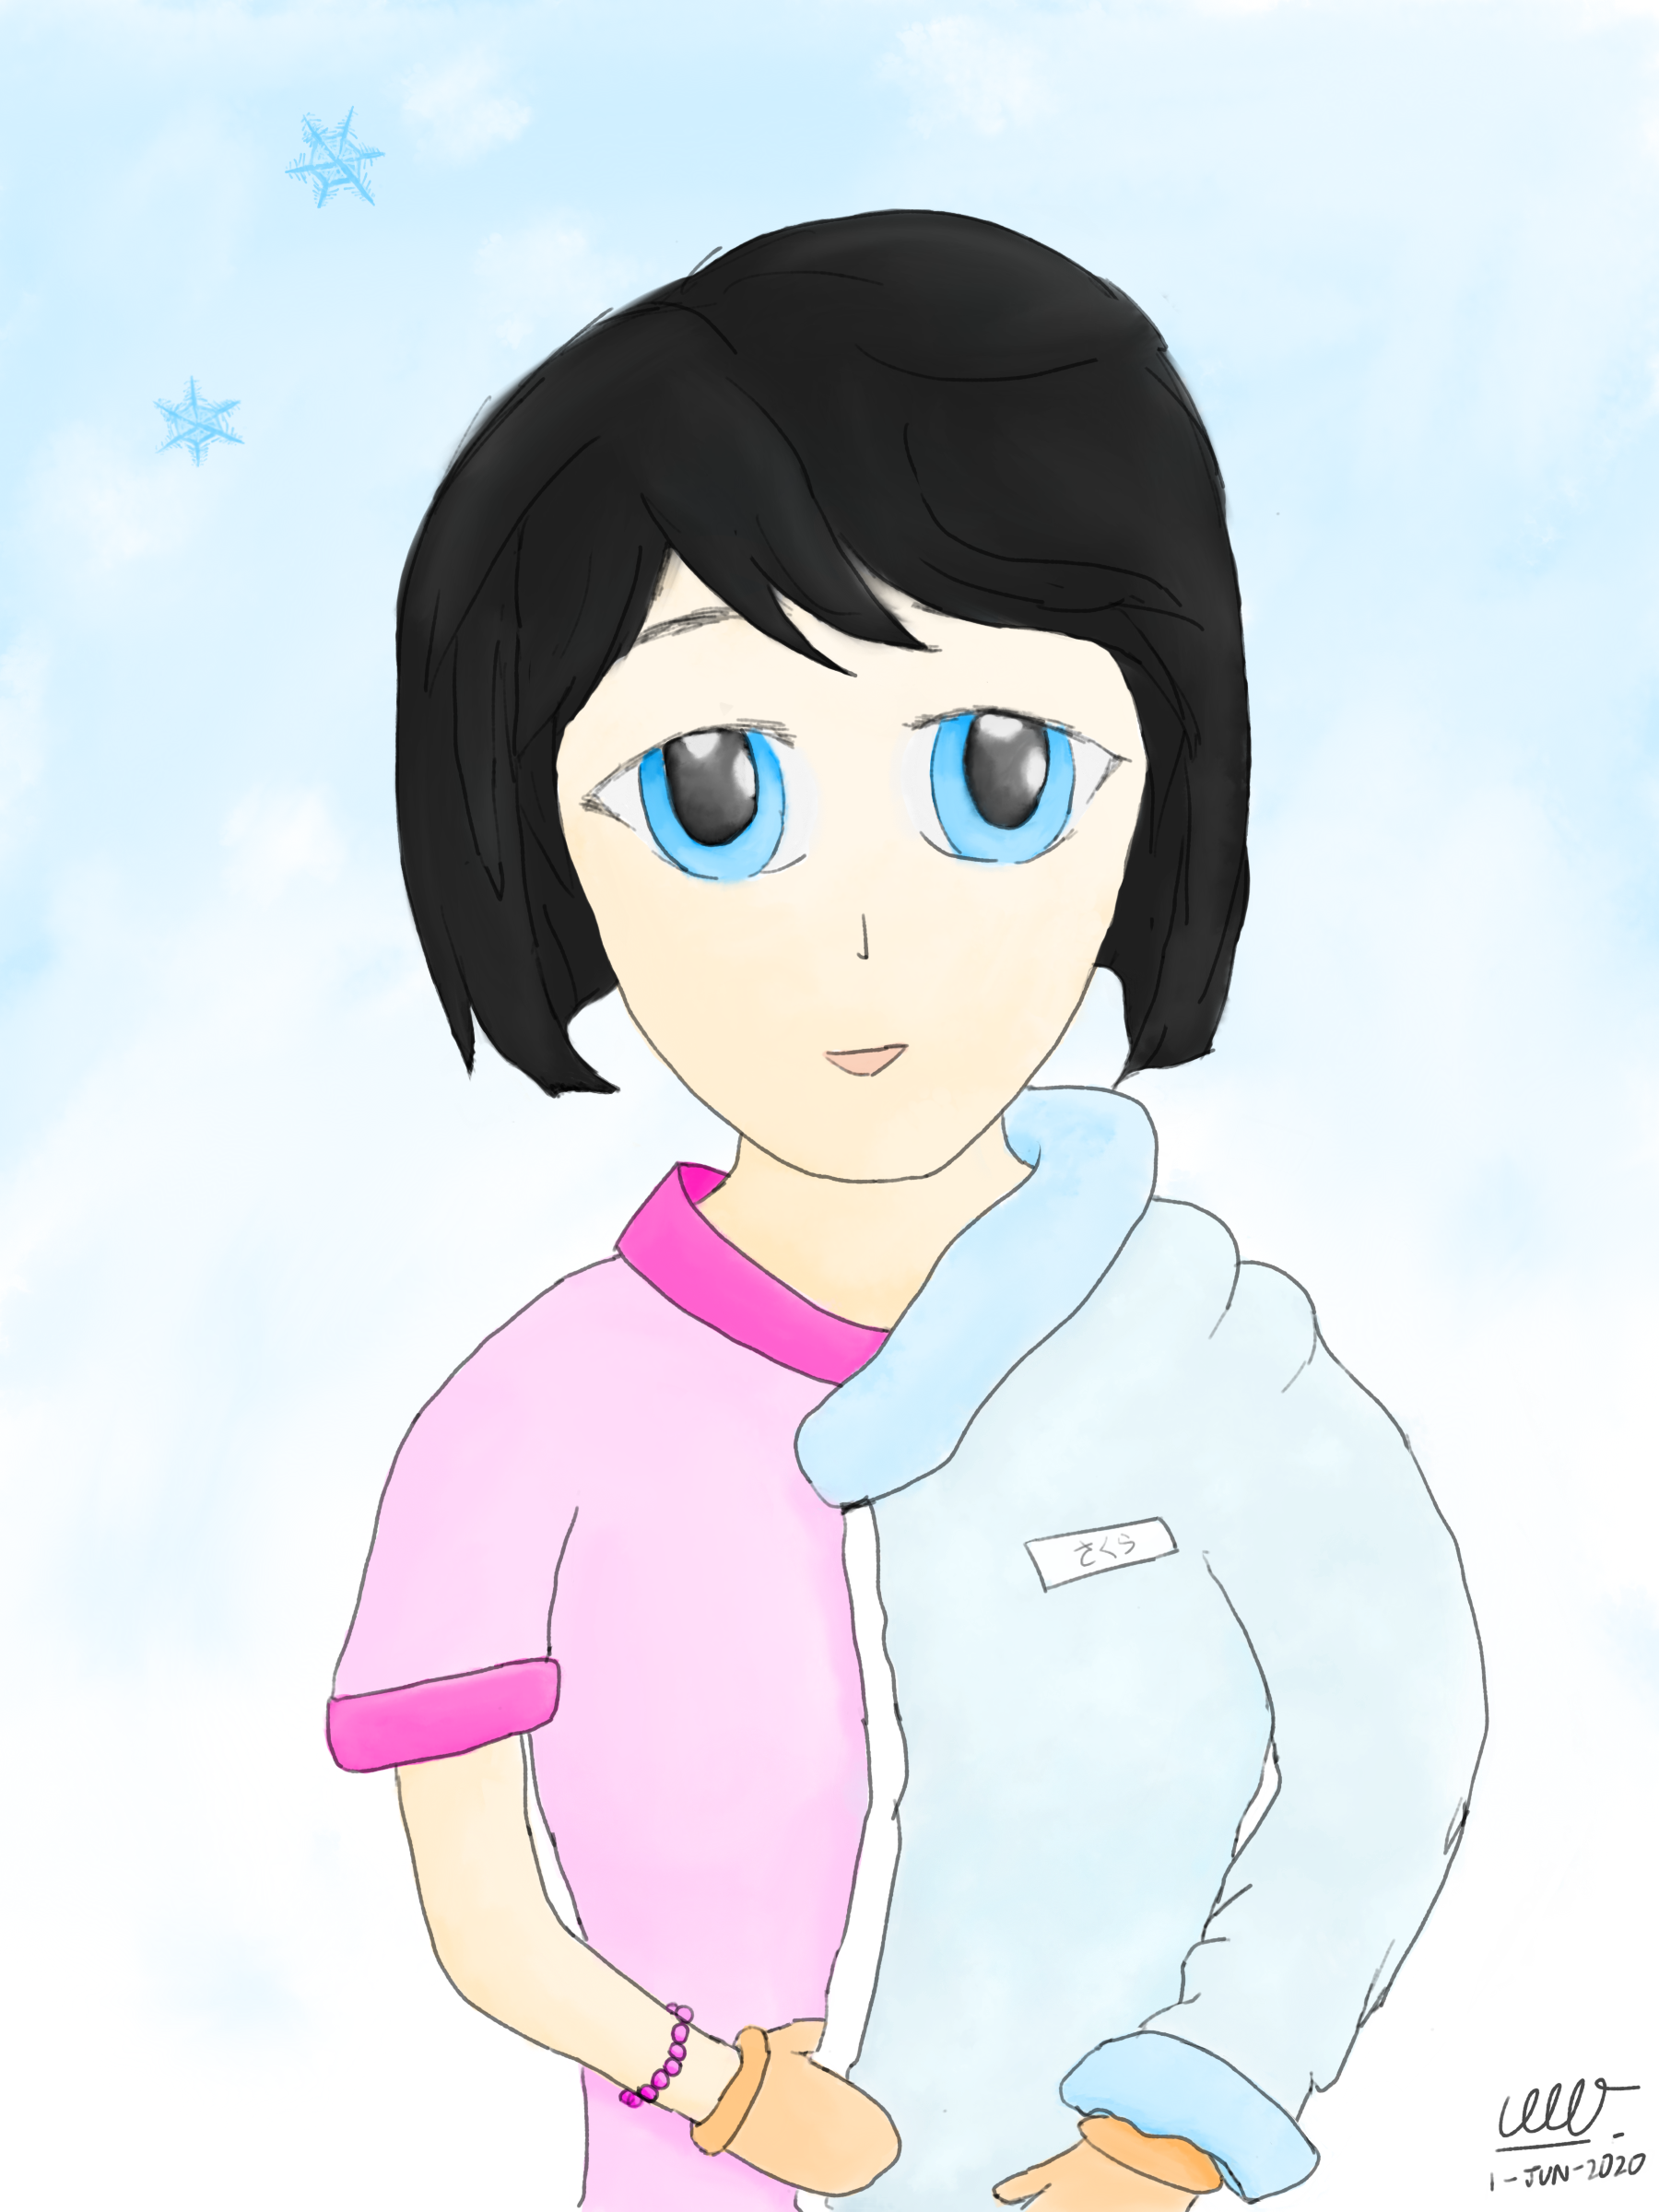 An e-watercolour portrait of sakura-chan, a fictional girl in the process of wearing a jacket. Half of the jacket is worn on the left portion of her body, also wearing a pair of gloves on both her hands. The background is vaguely snowing with a few snowflakes visible.